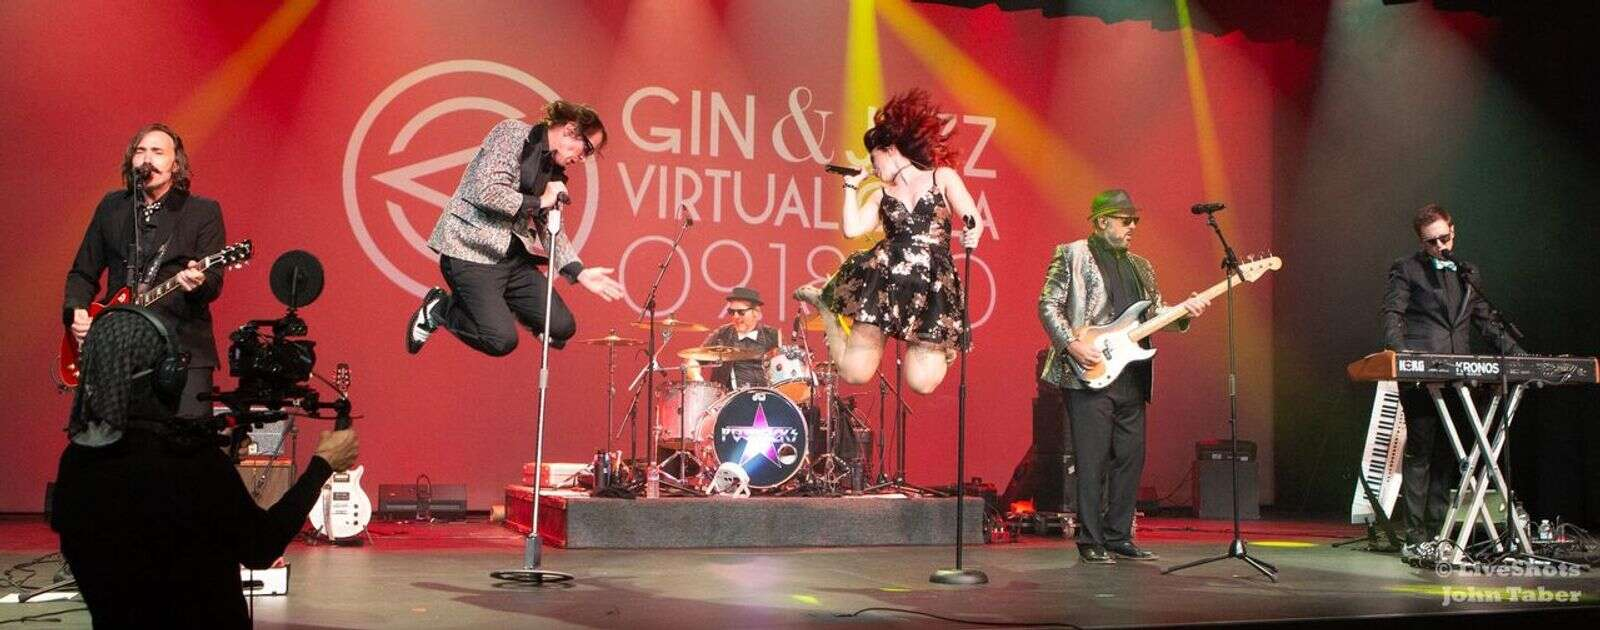 Pop Rocks performs at The Center for the Arts.